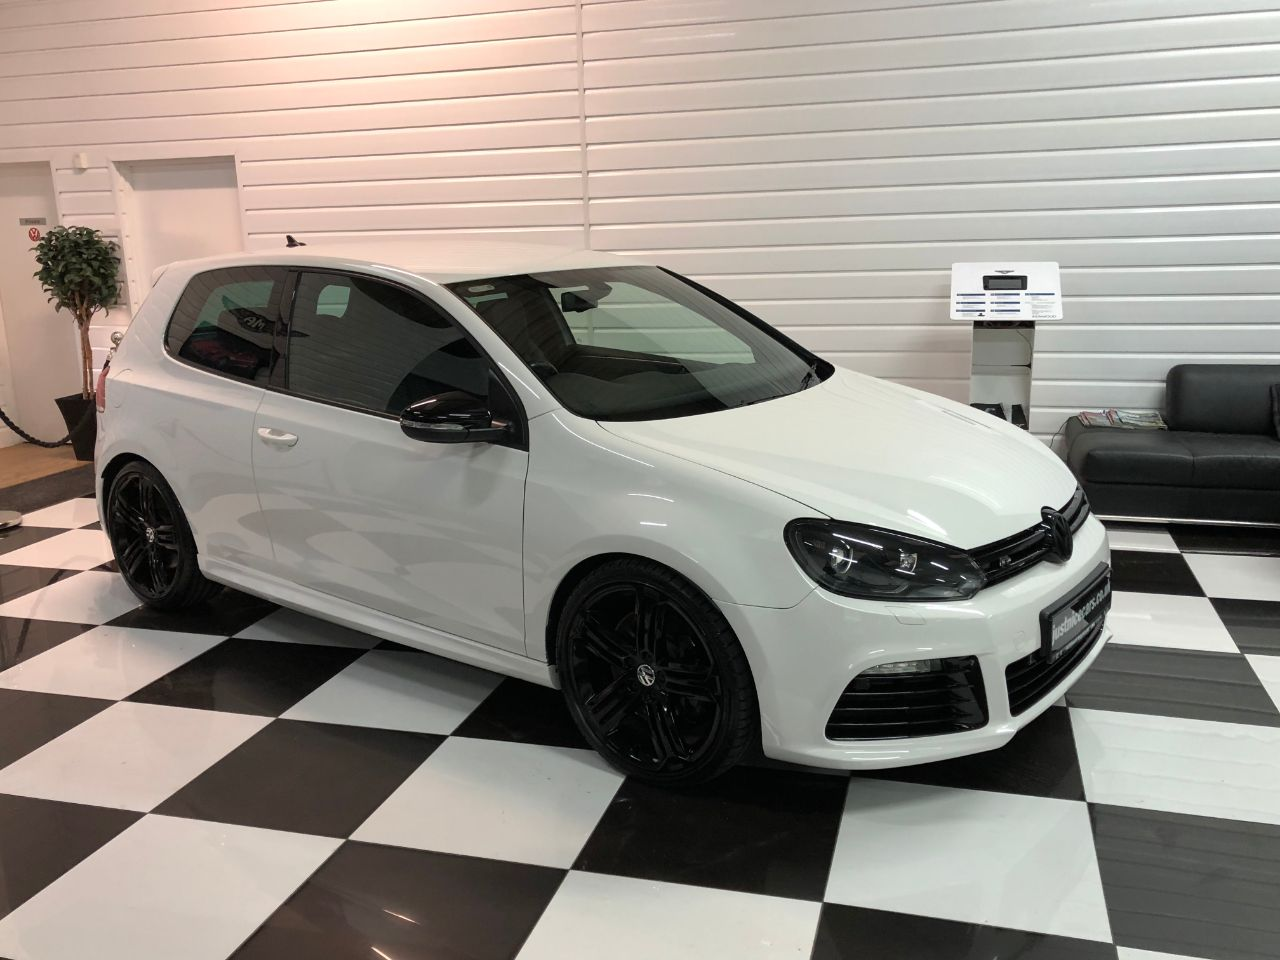 Volkswagen Golf 2.0 TSI R 4MOTION 3dr DSG Auto Hatchback Petrol Gloss Candy White